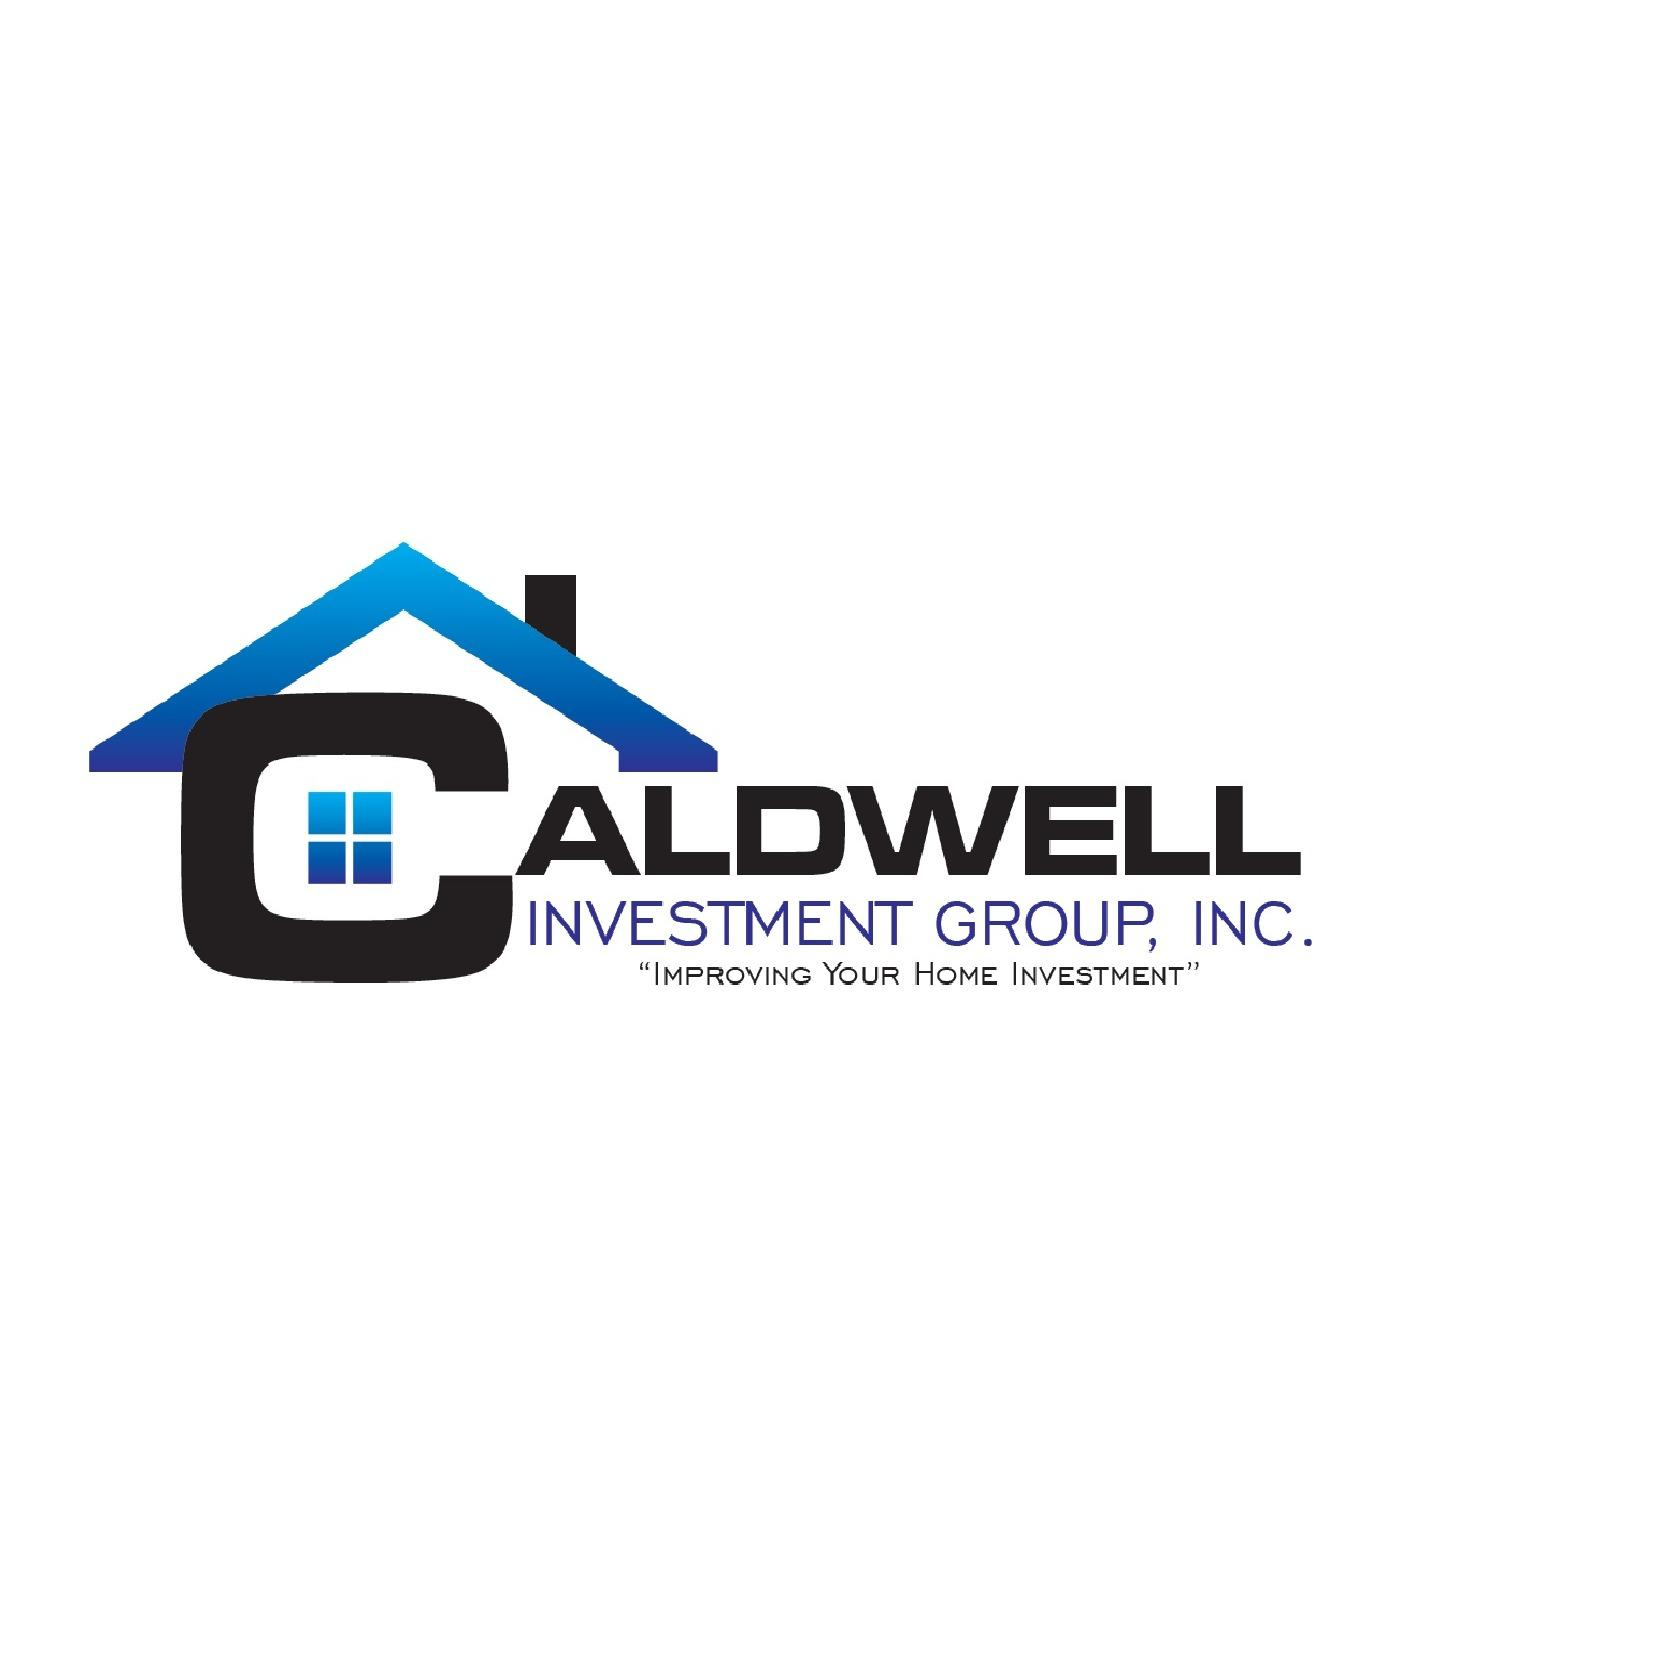 Caldwell Investment Group, Inc.